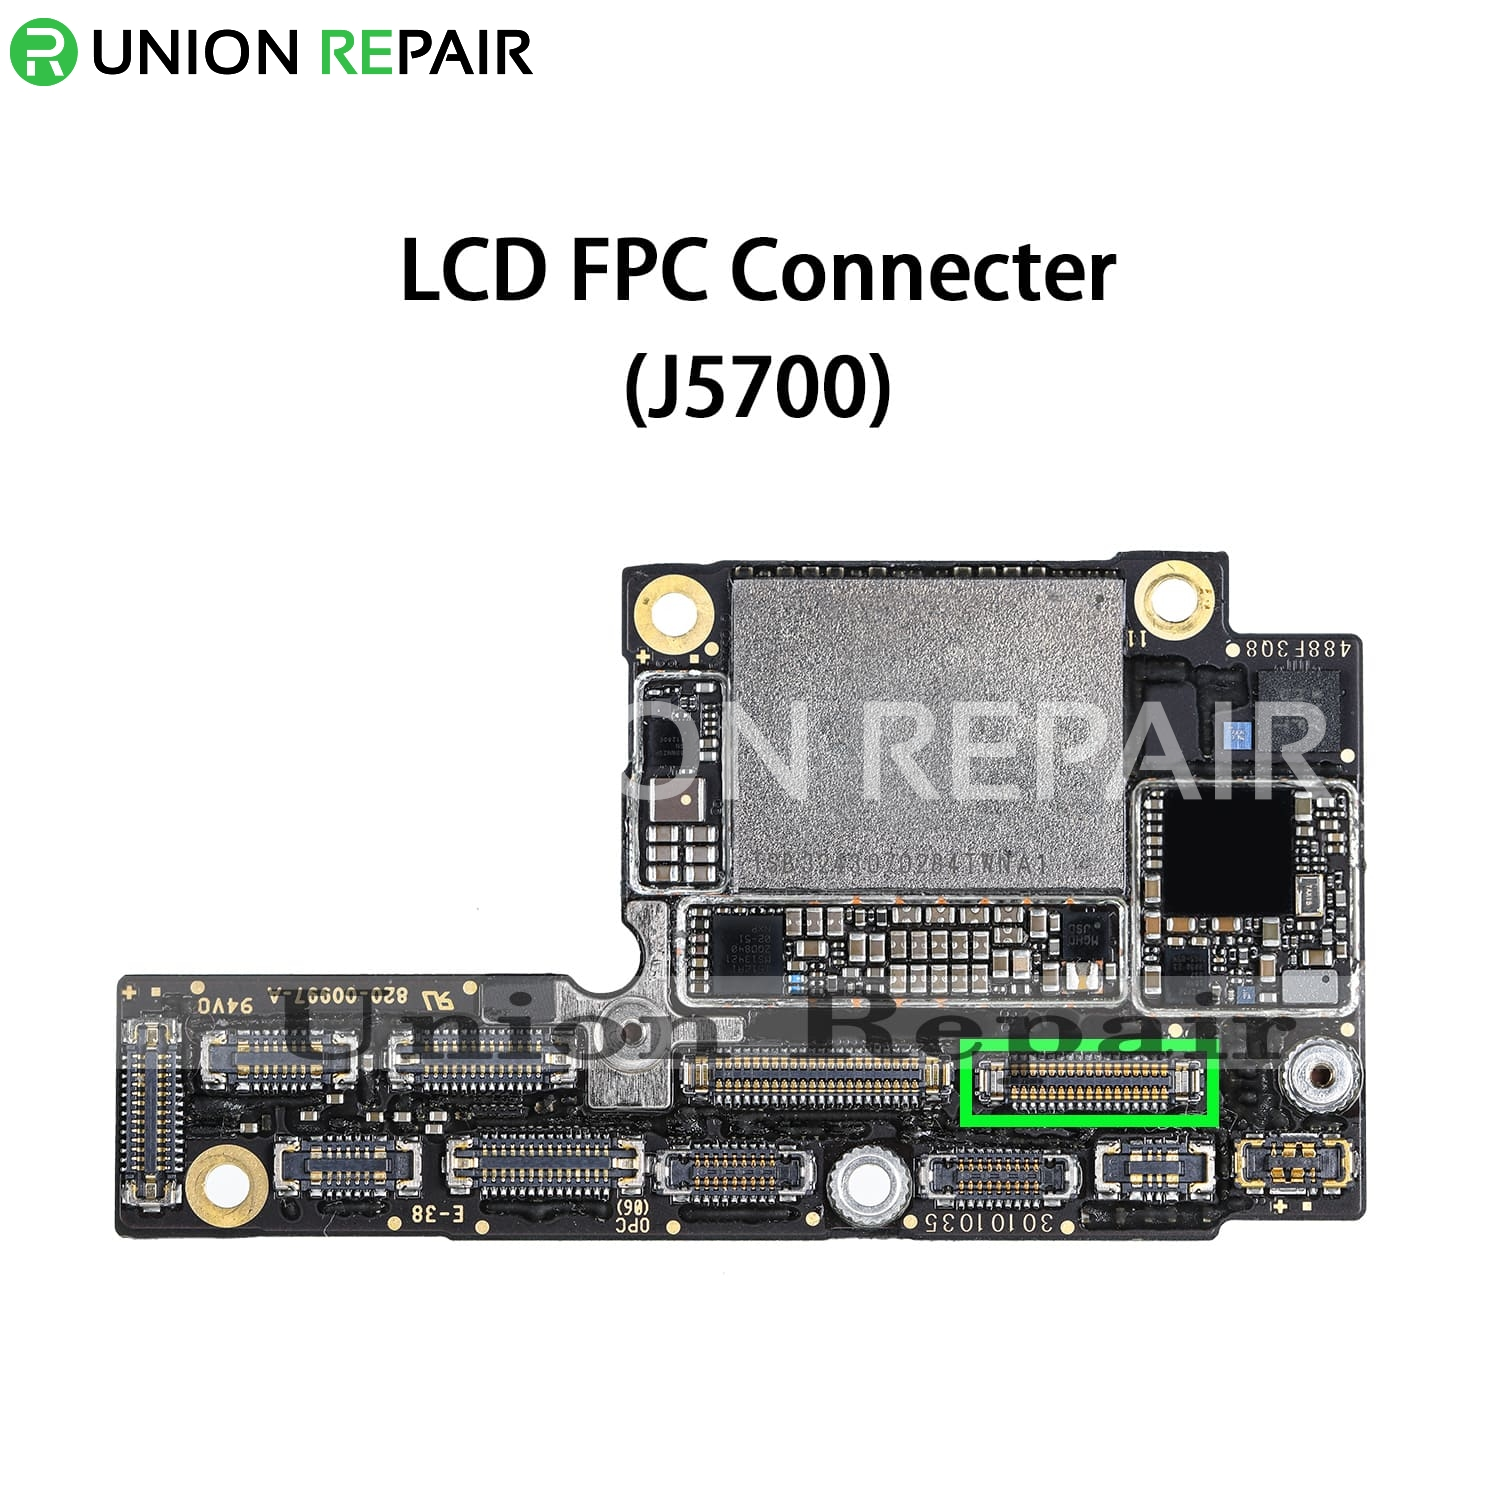 Replacement for iPhone XS LCD Connector Port Onboard